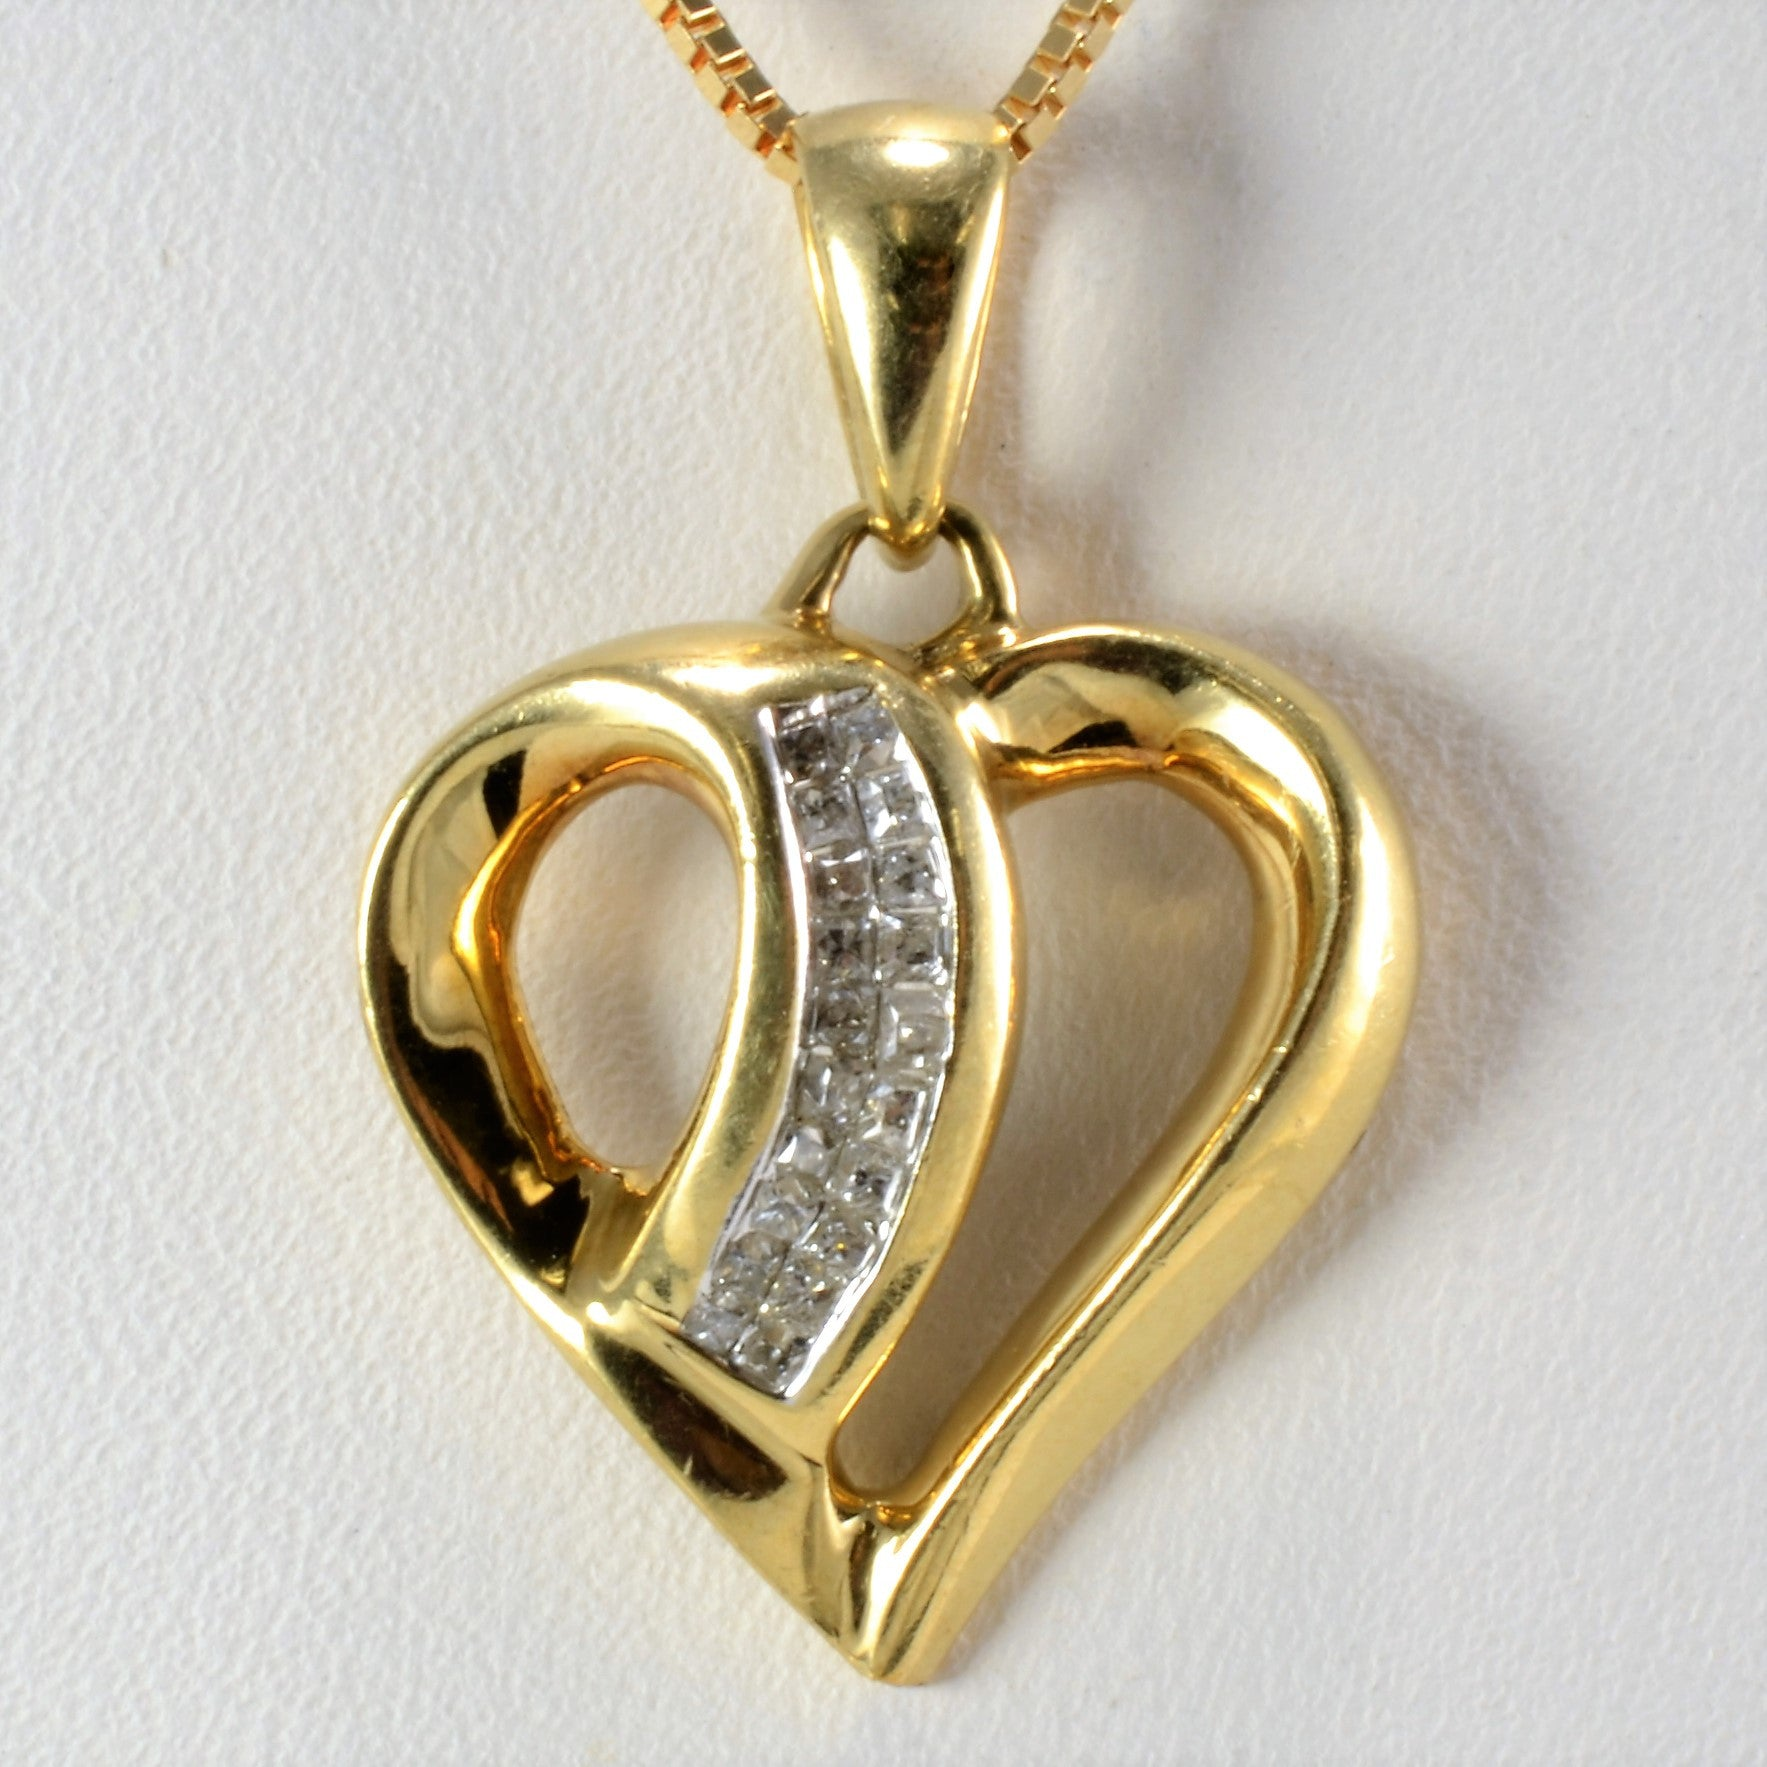 Heart Shape Diamond Pendant Necklace